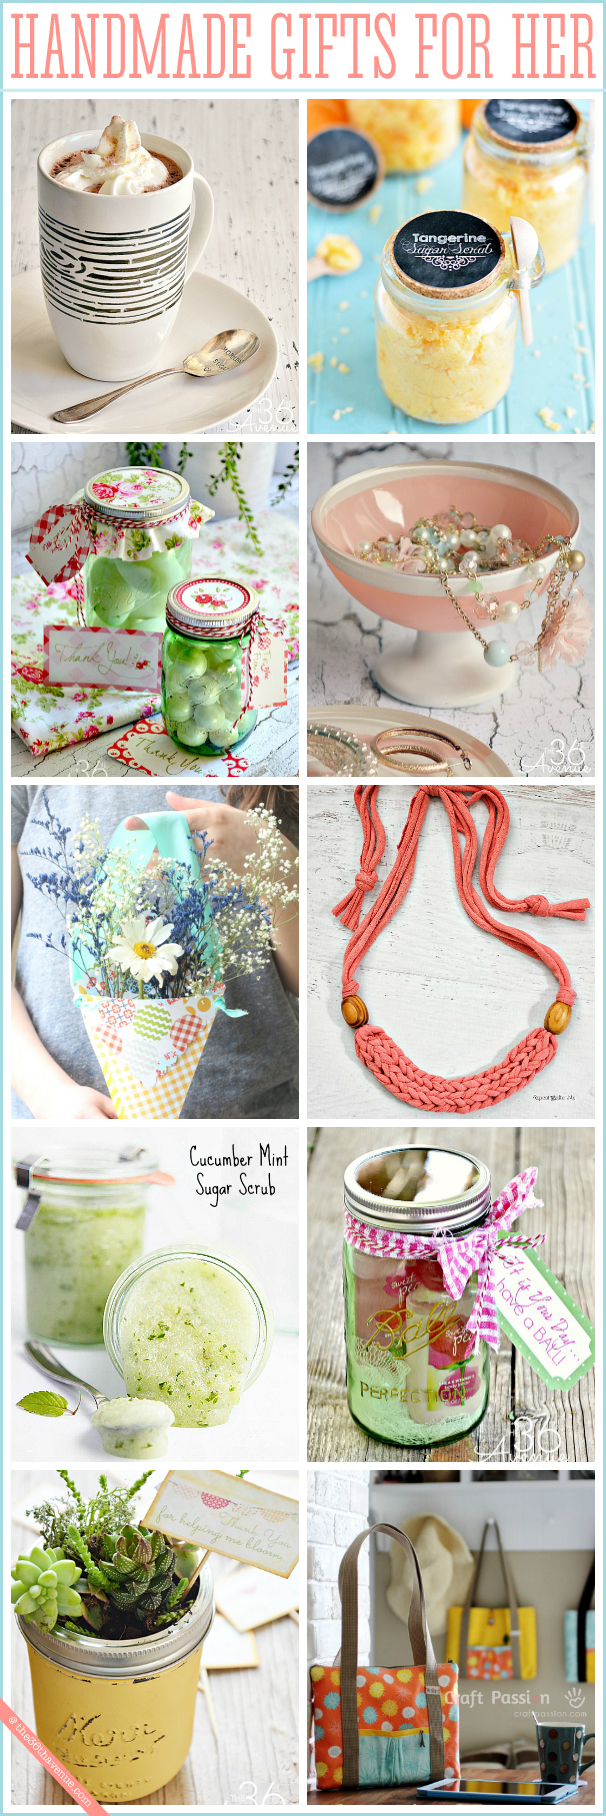 The 36th avenue handmade gifts for teachers the 36th Christmas ideas for mothers